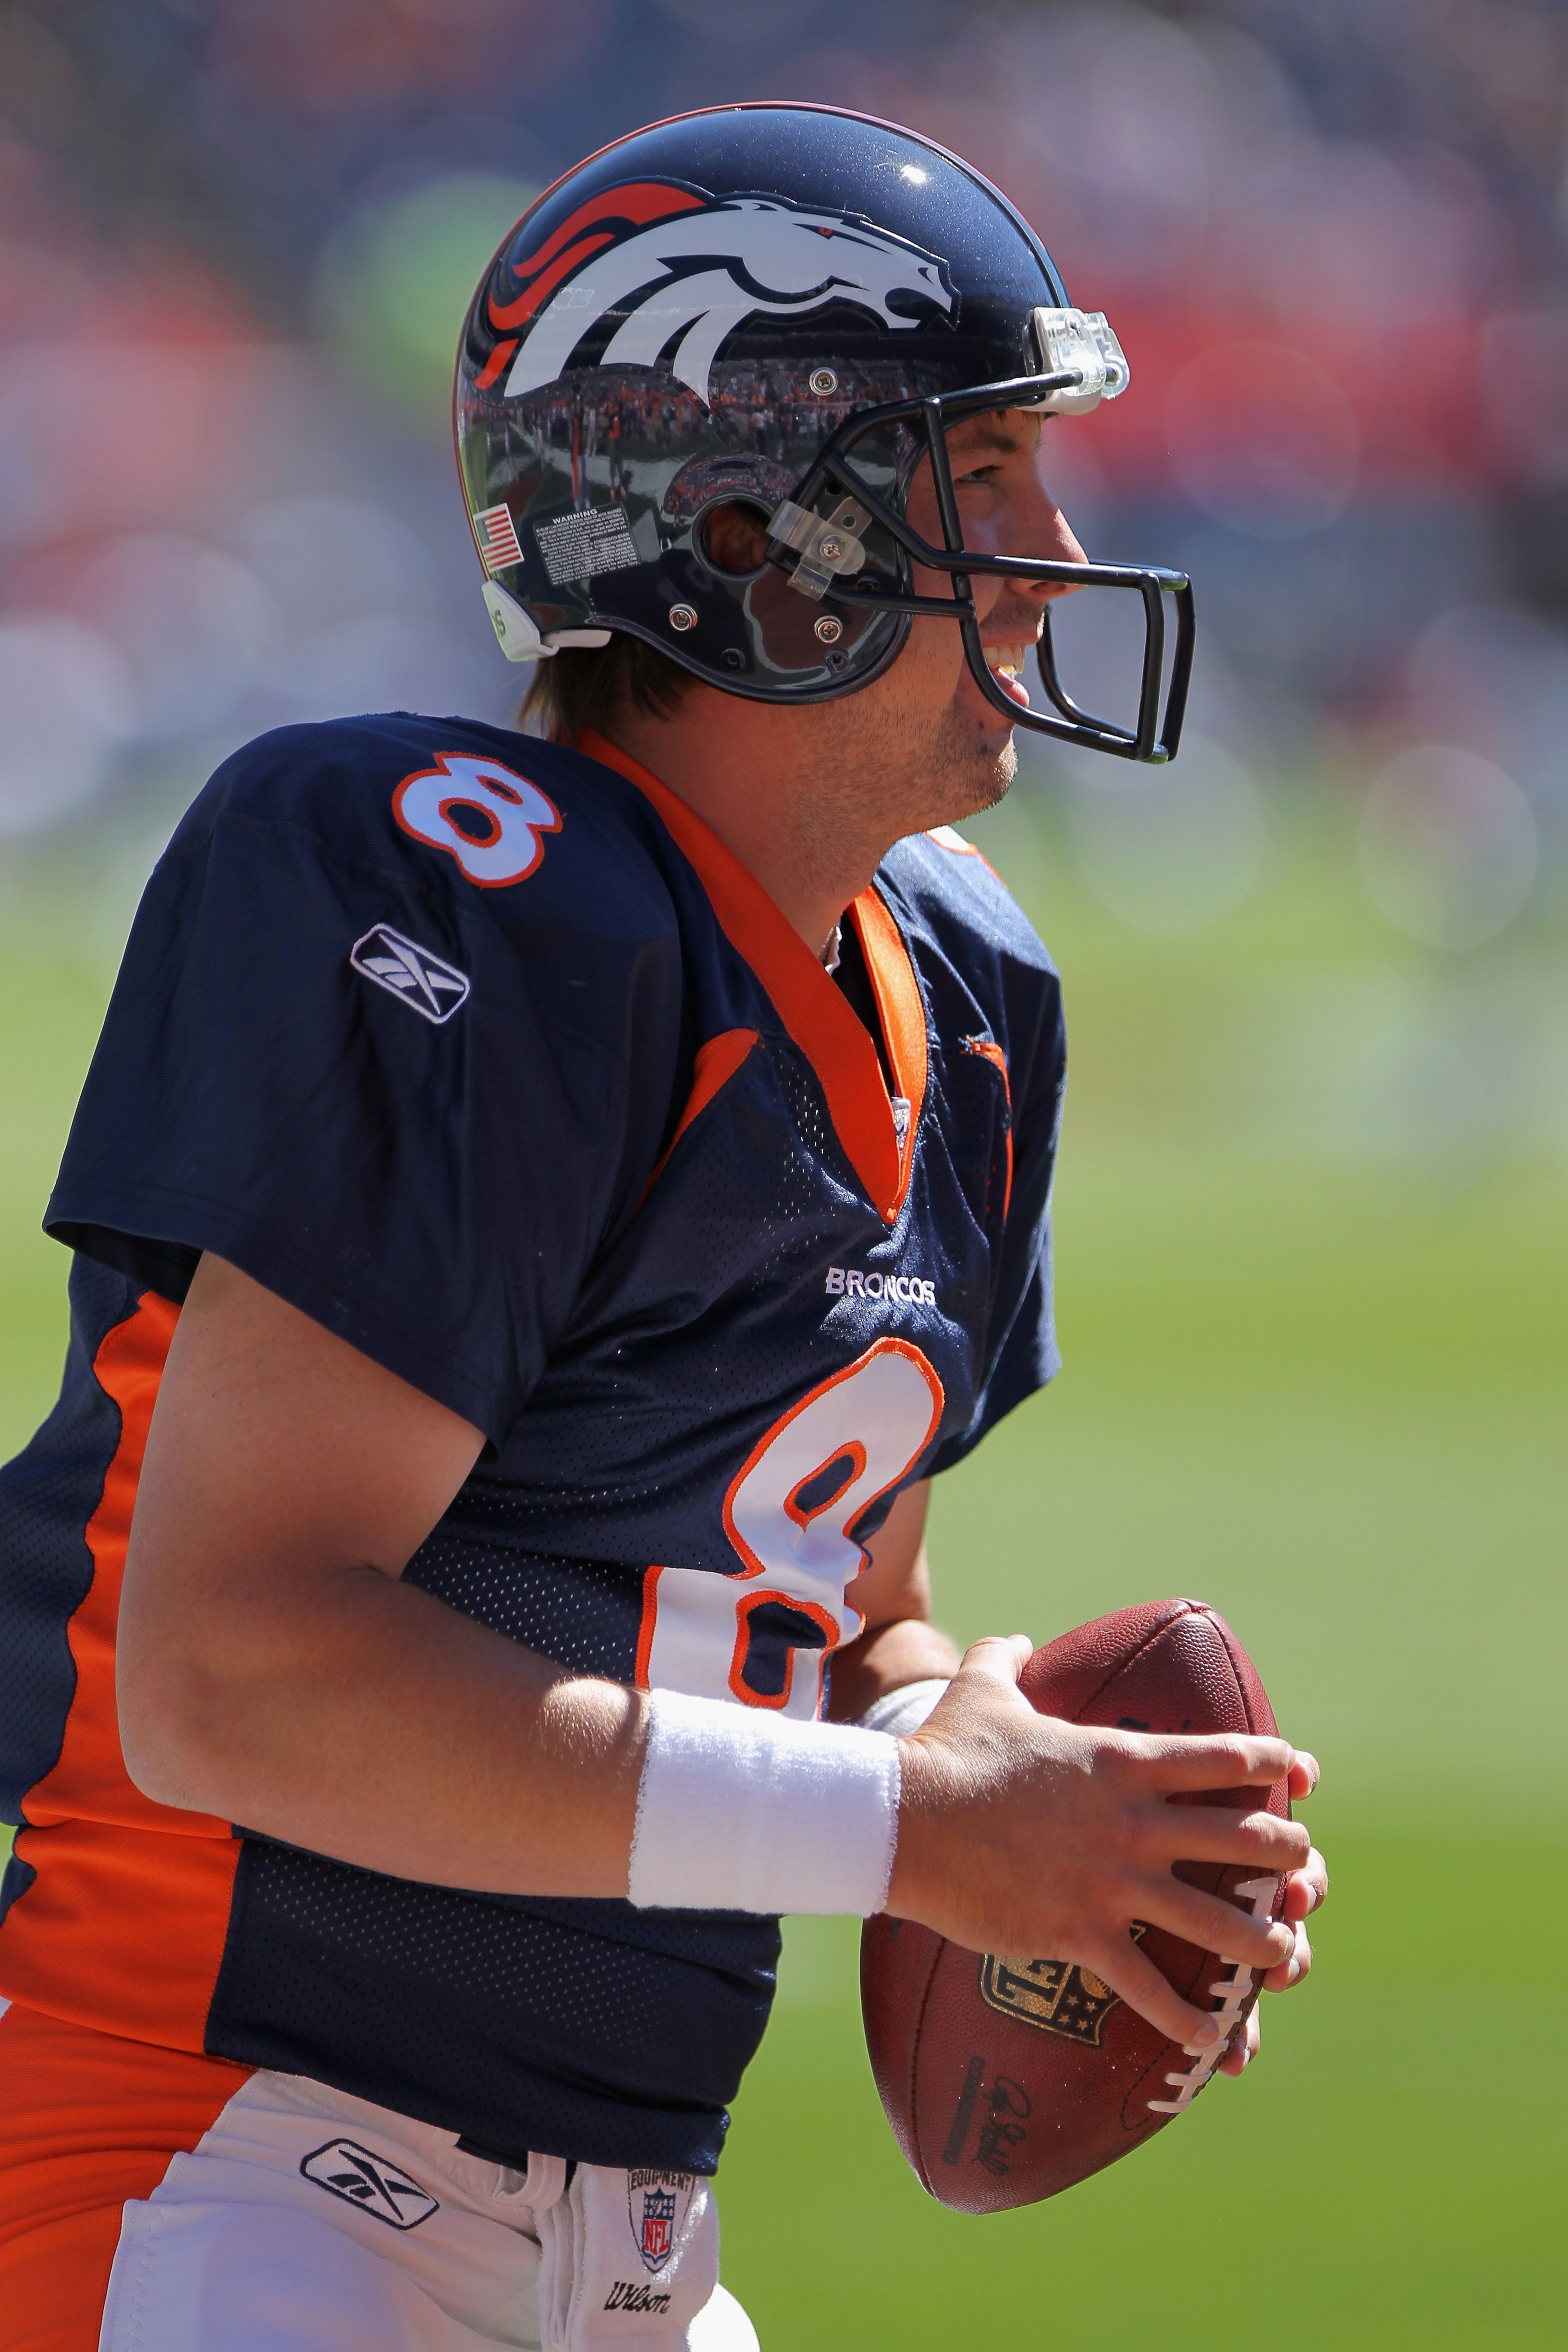 DENVER - SEPTEMBER 26:  Quarterback Kyle Orton #8 of the Denver Broncos warms up prior to facing the Indianapolis Colts at INVESCO Field at Mile High on September 26, 2010 in Denver, Colorado. Orton passed for 476 yards as the Colts defeated the Broncos 2